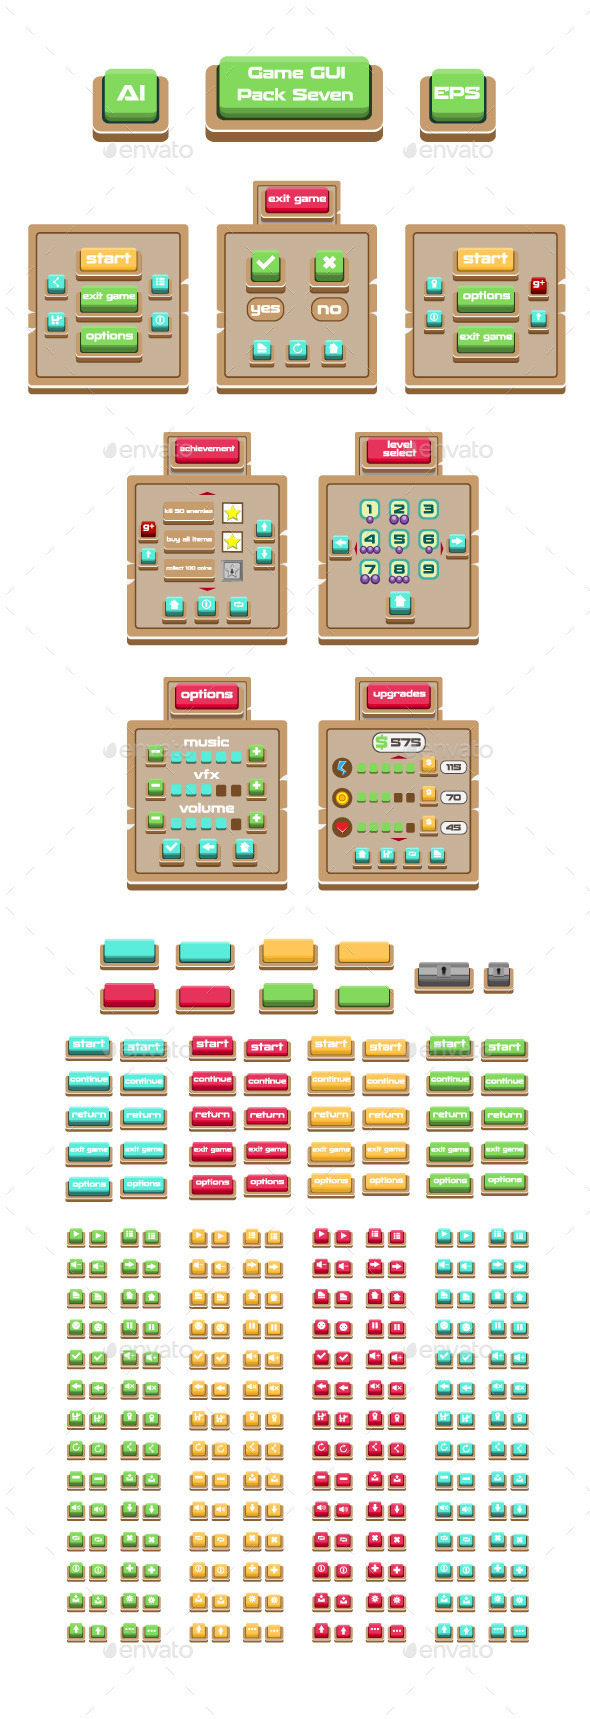 Game GUI Pack Seven - User Interfaces Game Assets